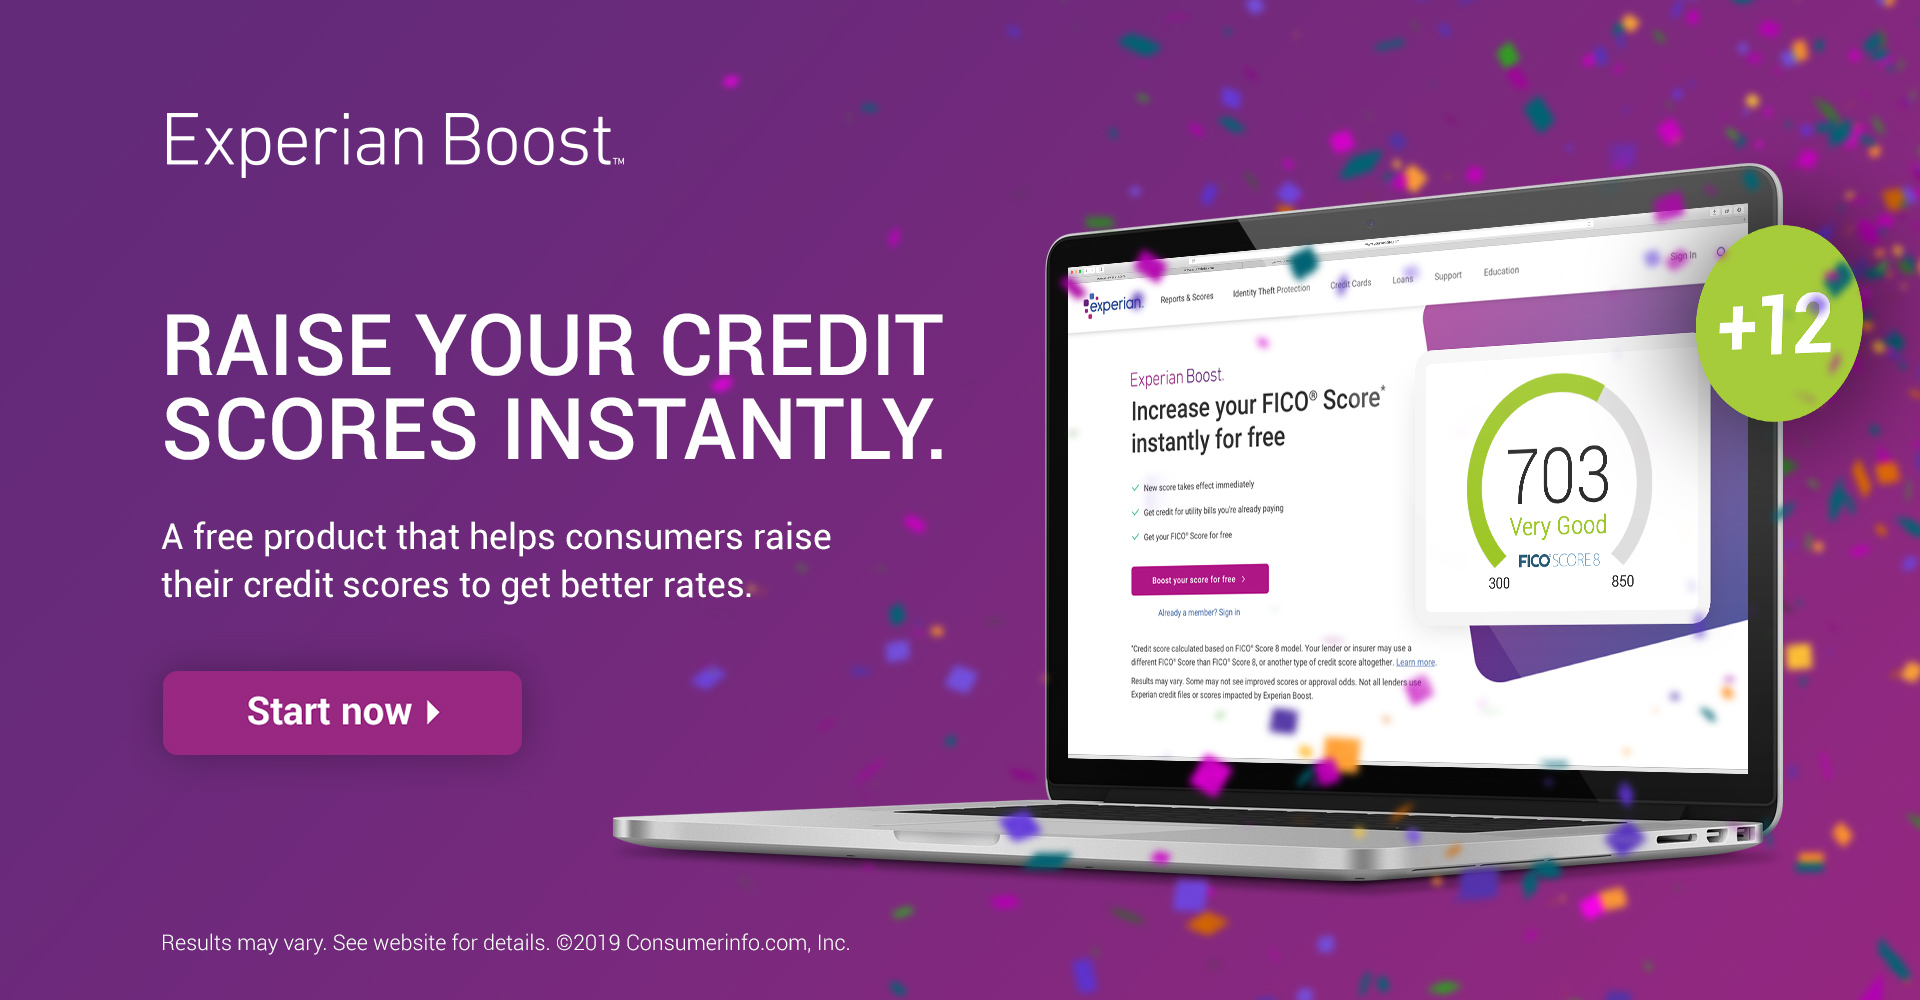 Experian Boost Start Now